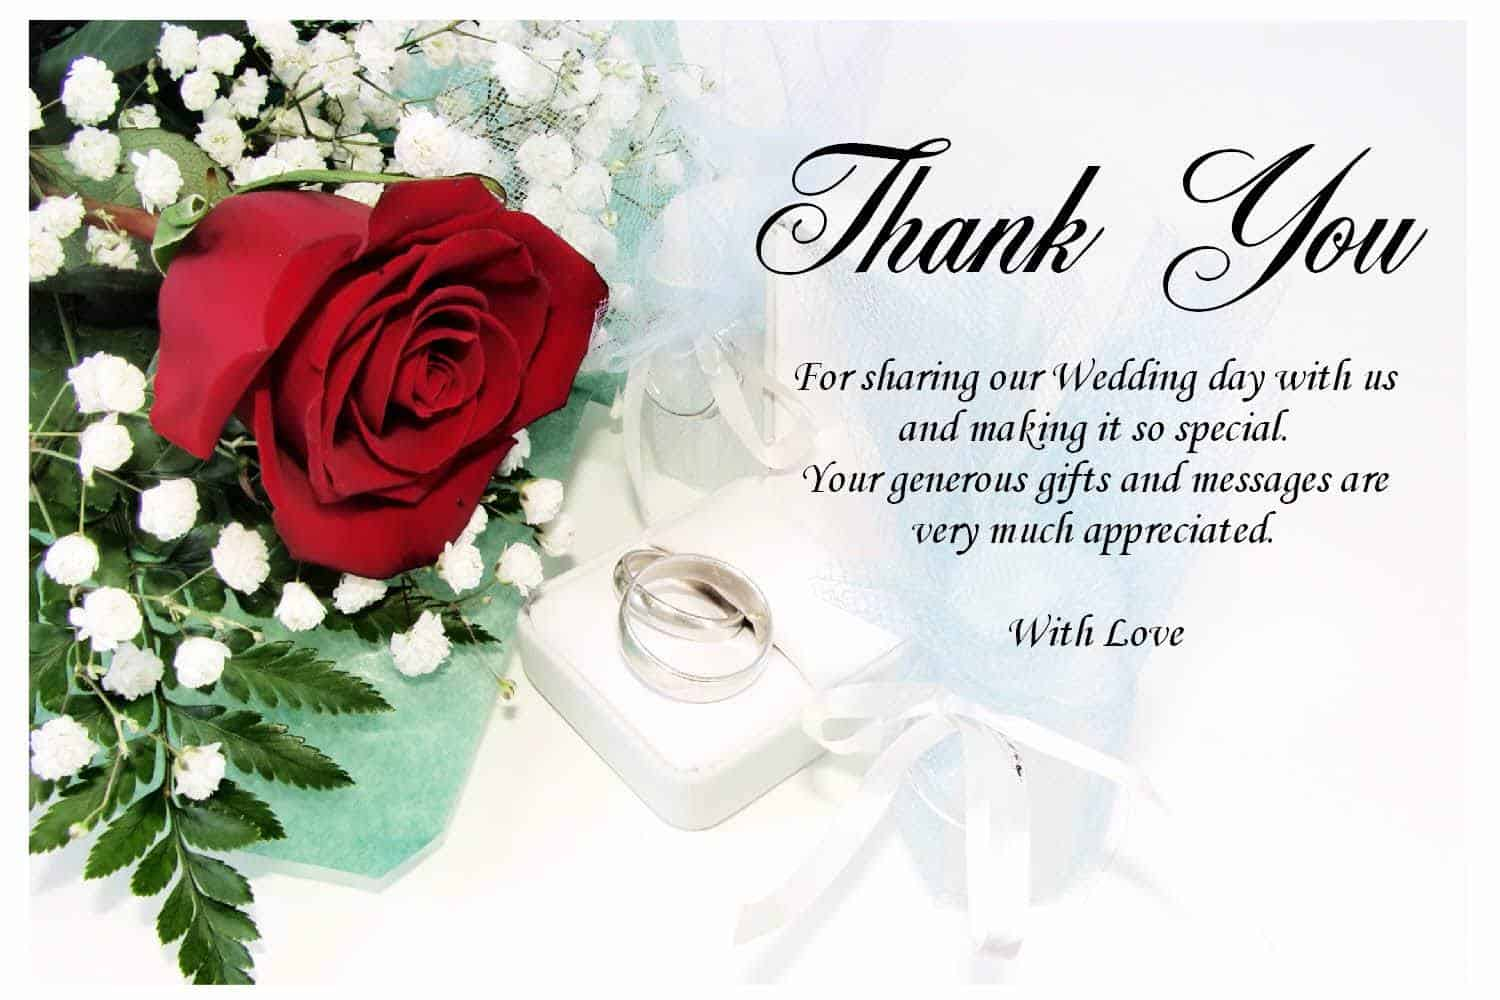 wedding thank you messages from bride and groom